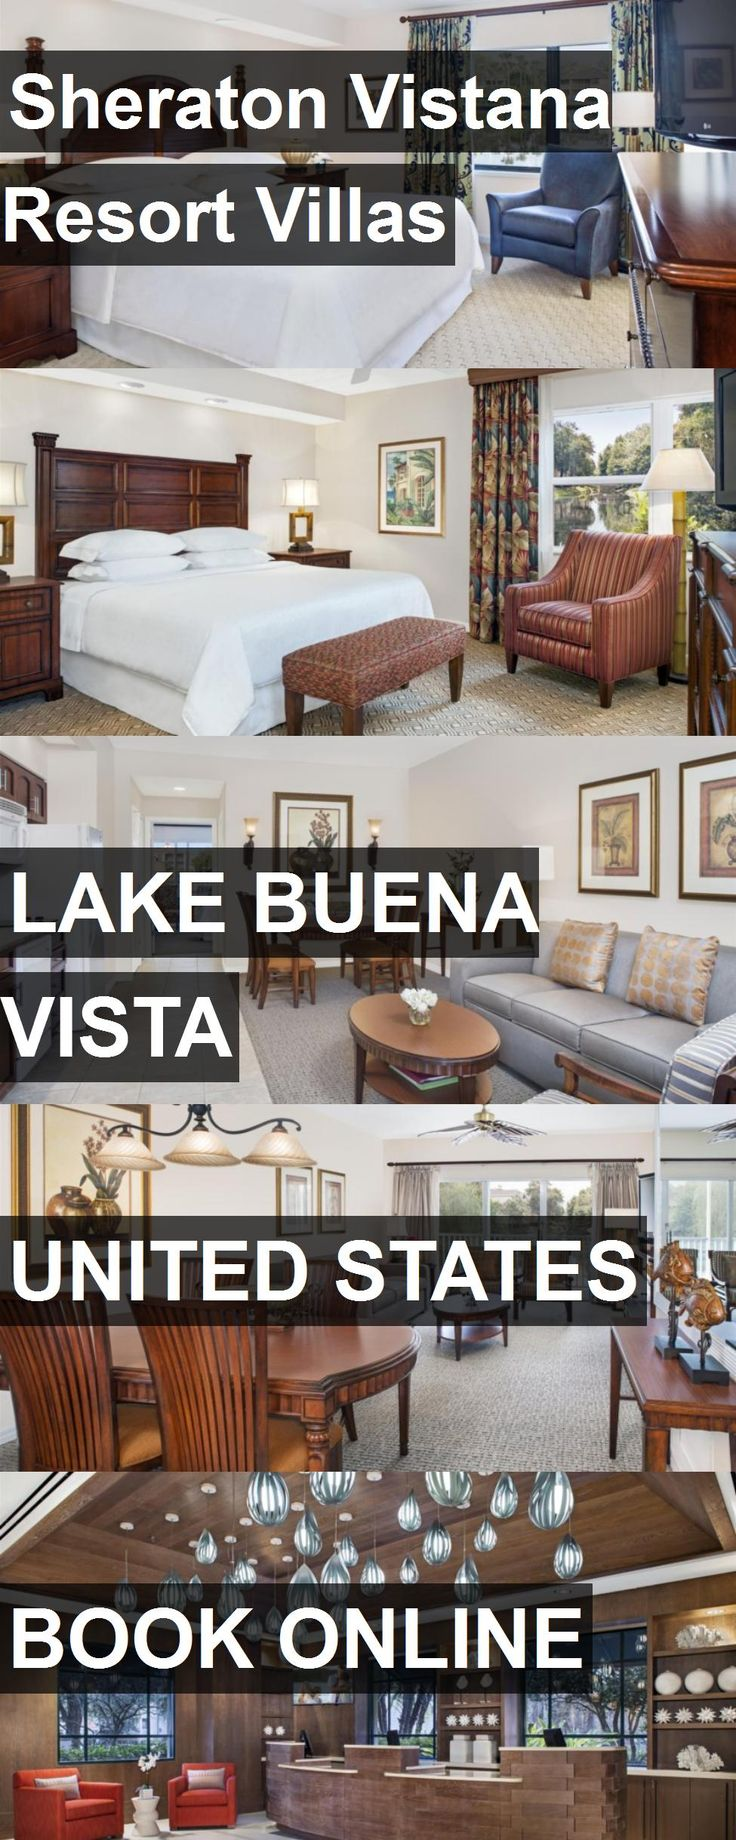 Hotel Sheraton Vistana Resort Villas in Lake Buena Vista, United States. For more information, photos, reviews and best prices please follow the link. #UnitedStates #LakeBuenaVista #travel #vacation #hotel